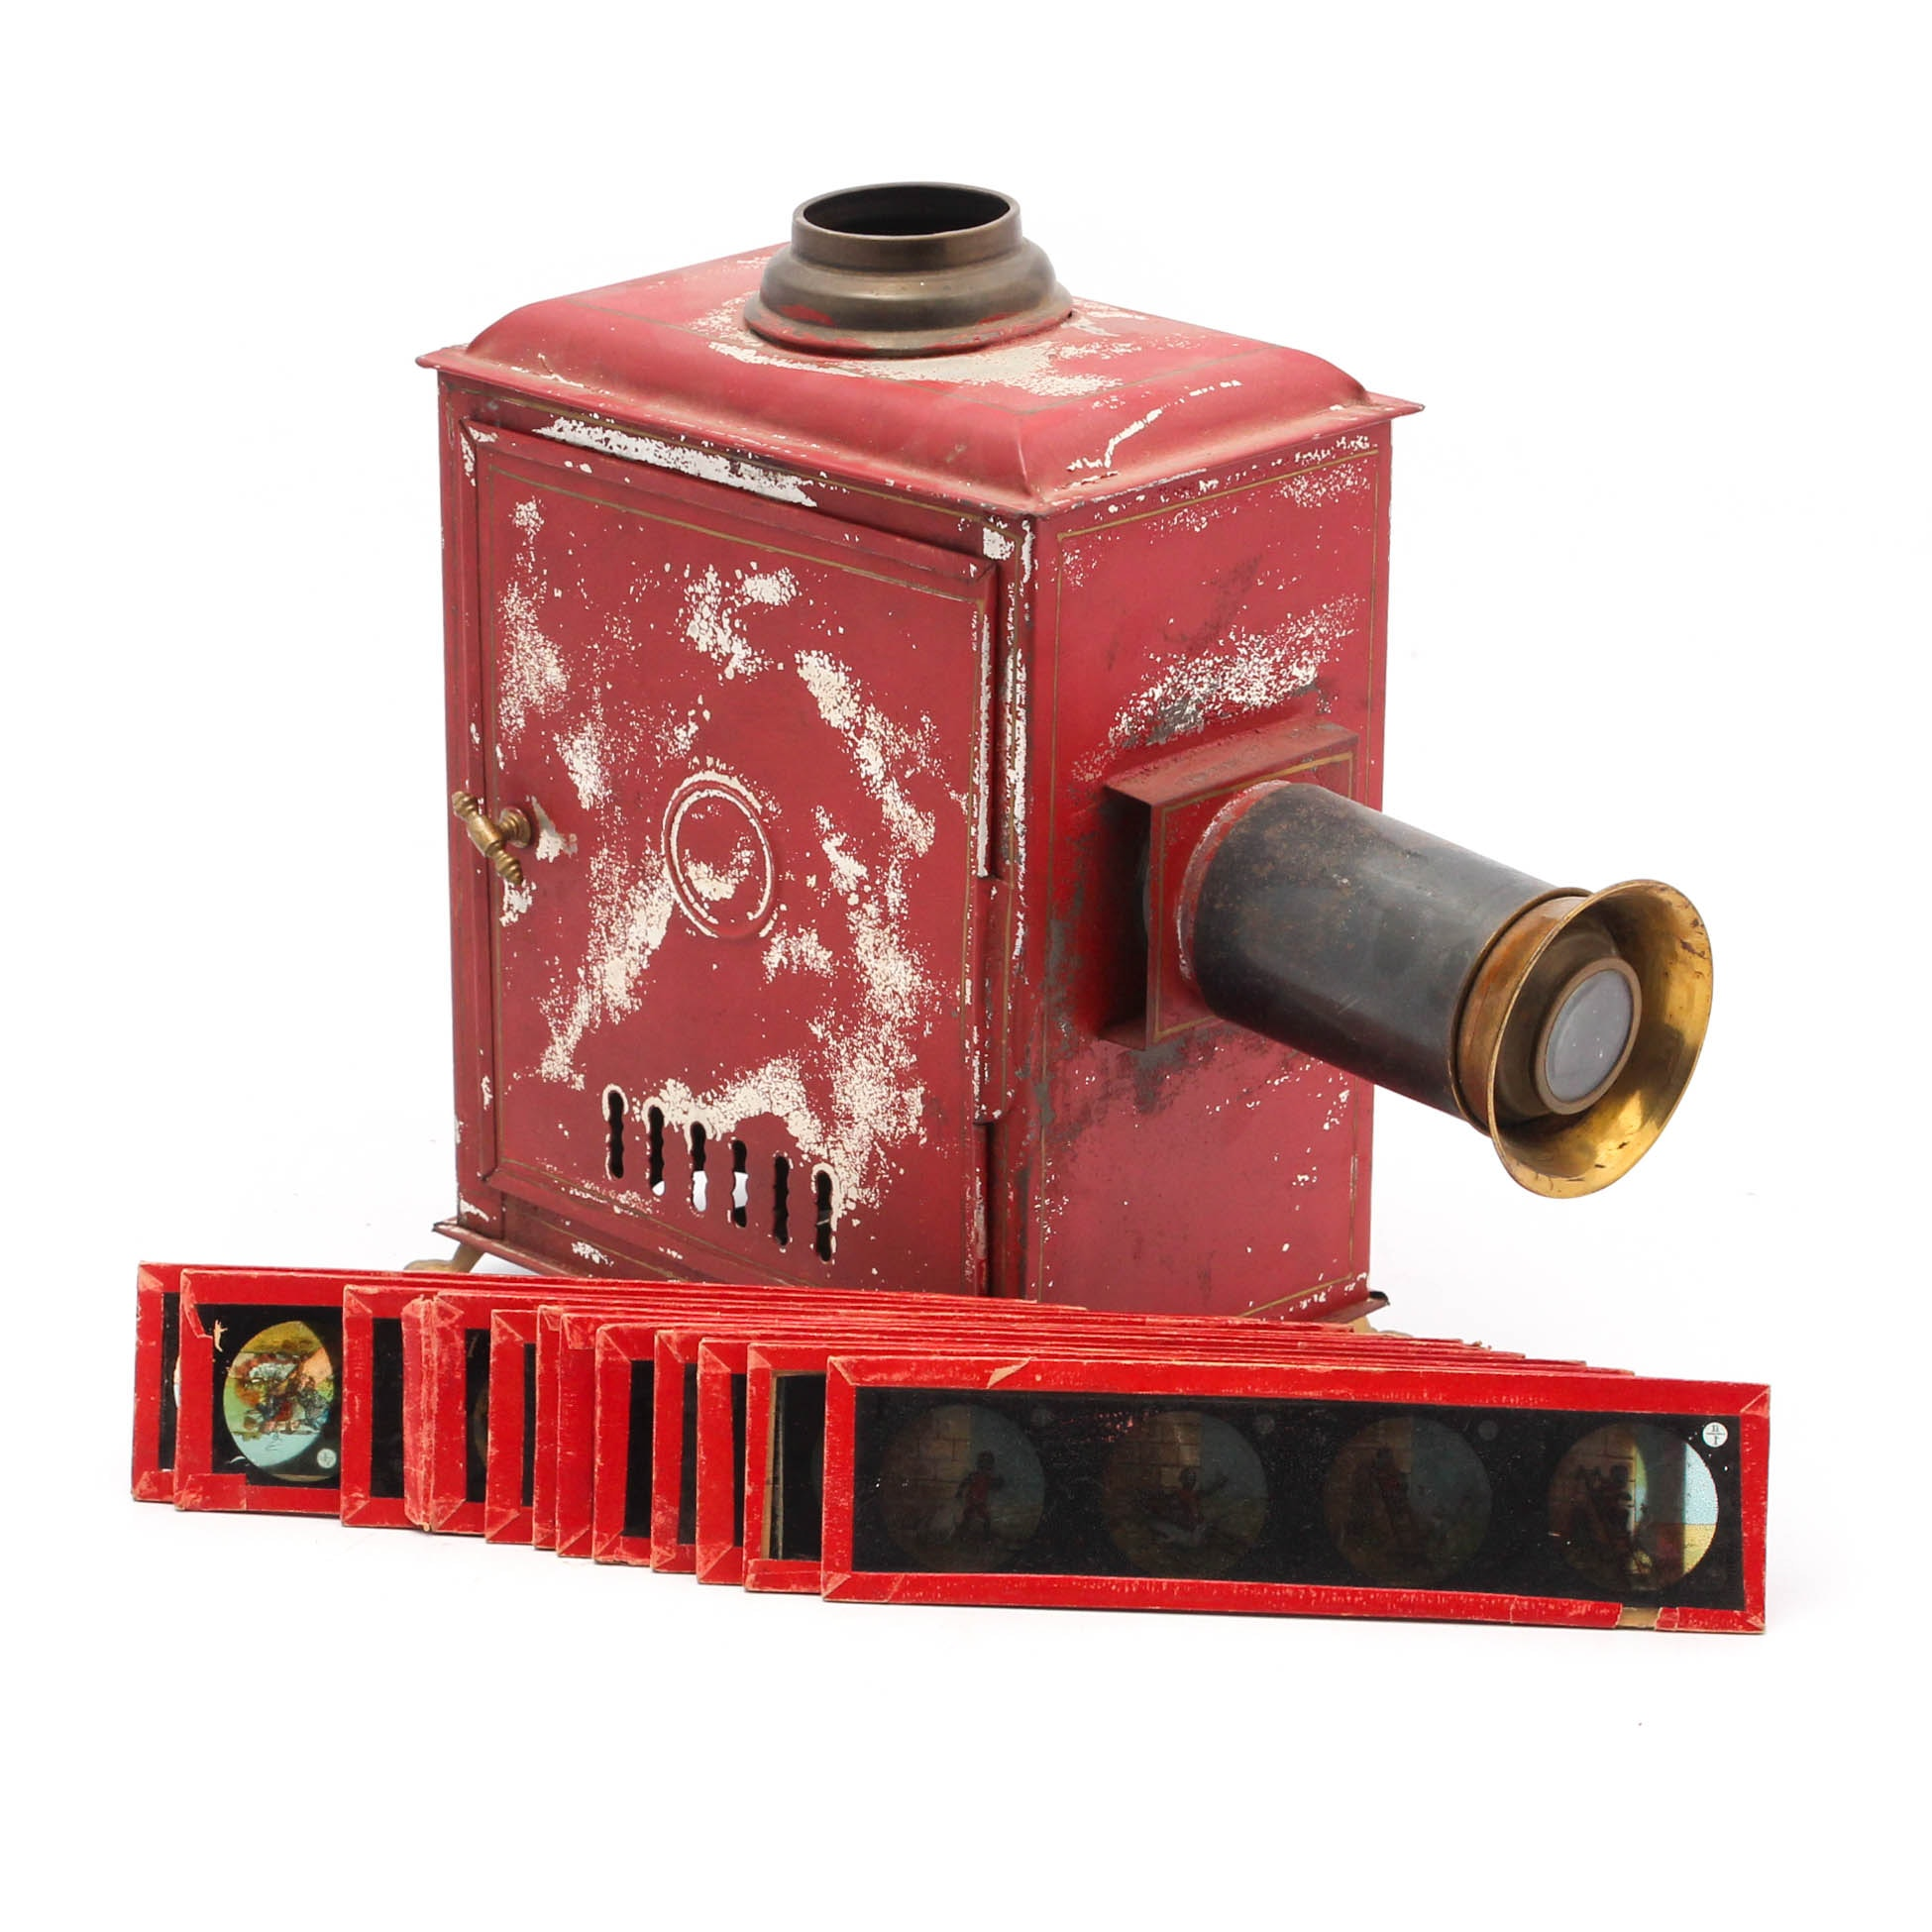 Antique Red Magic Lantern Projector with Slides